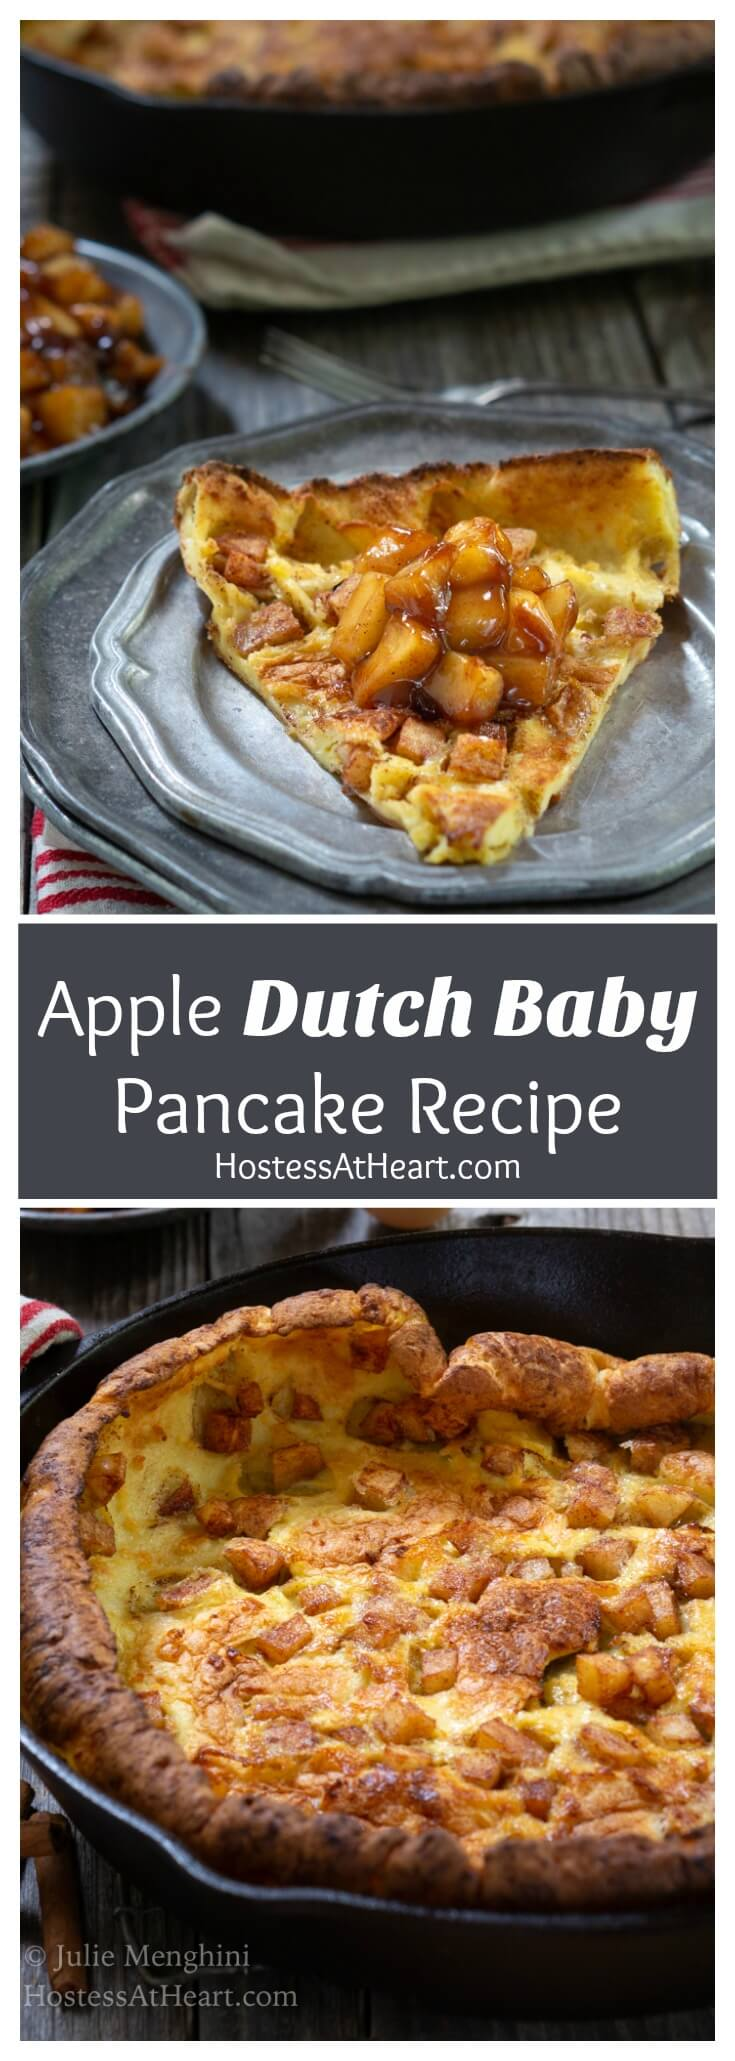 Pinterest collage of Apple Dutch Baby Pancake